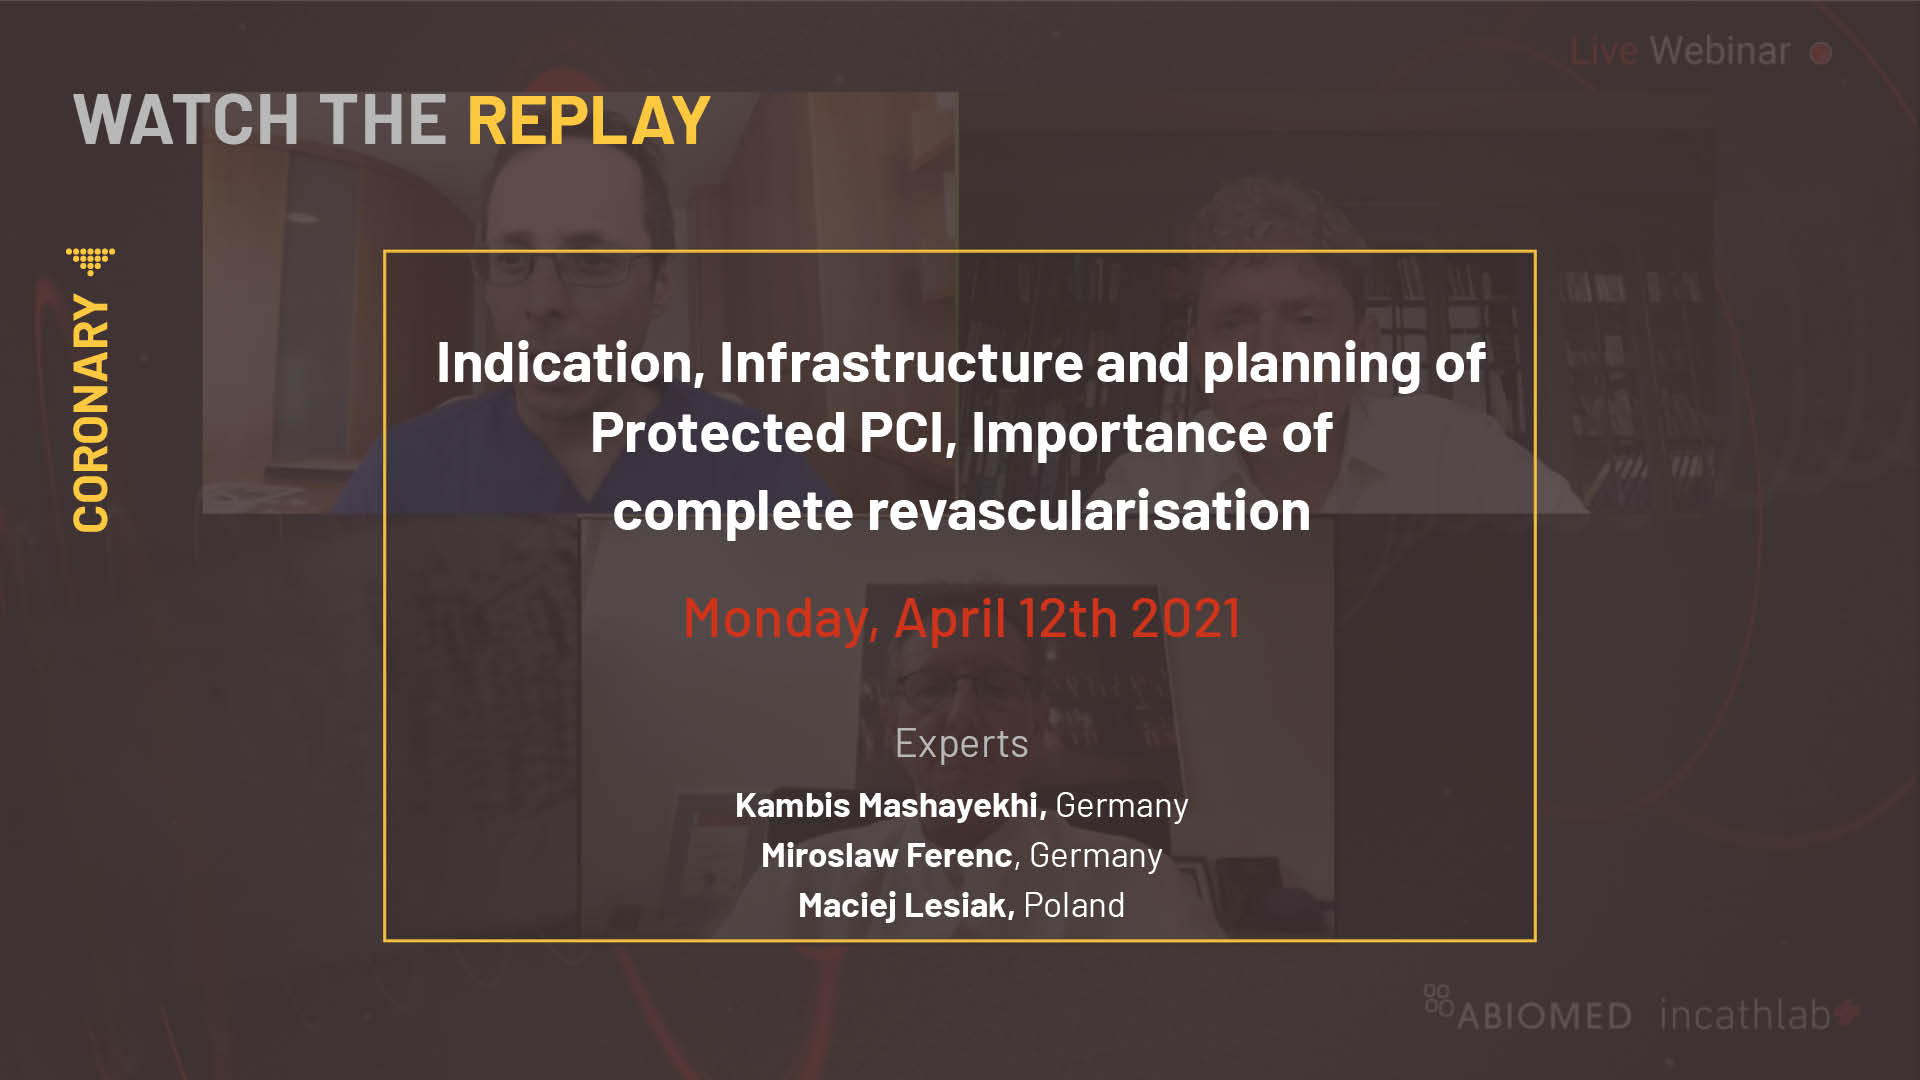 Indication, Infrastructure and planning of Protected PCI, Importance of complete revascularisation